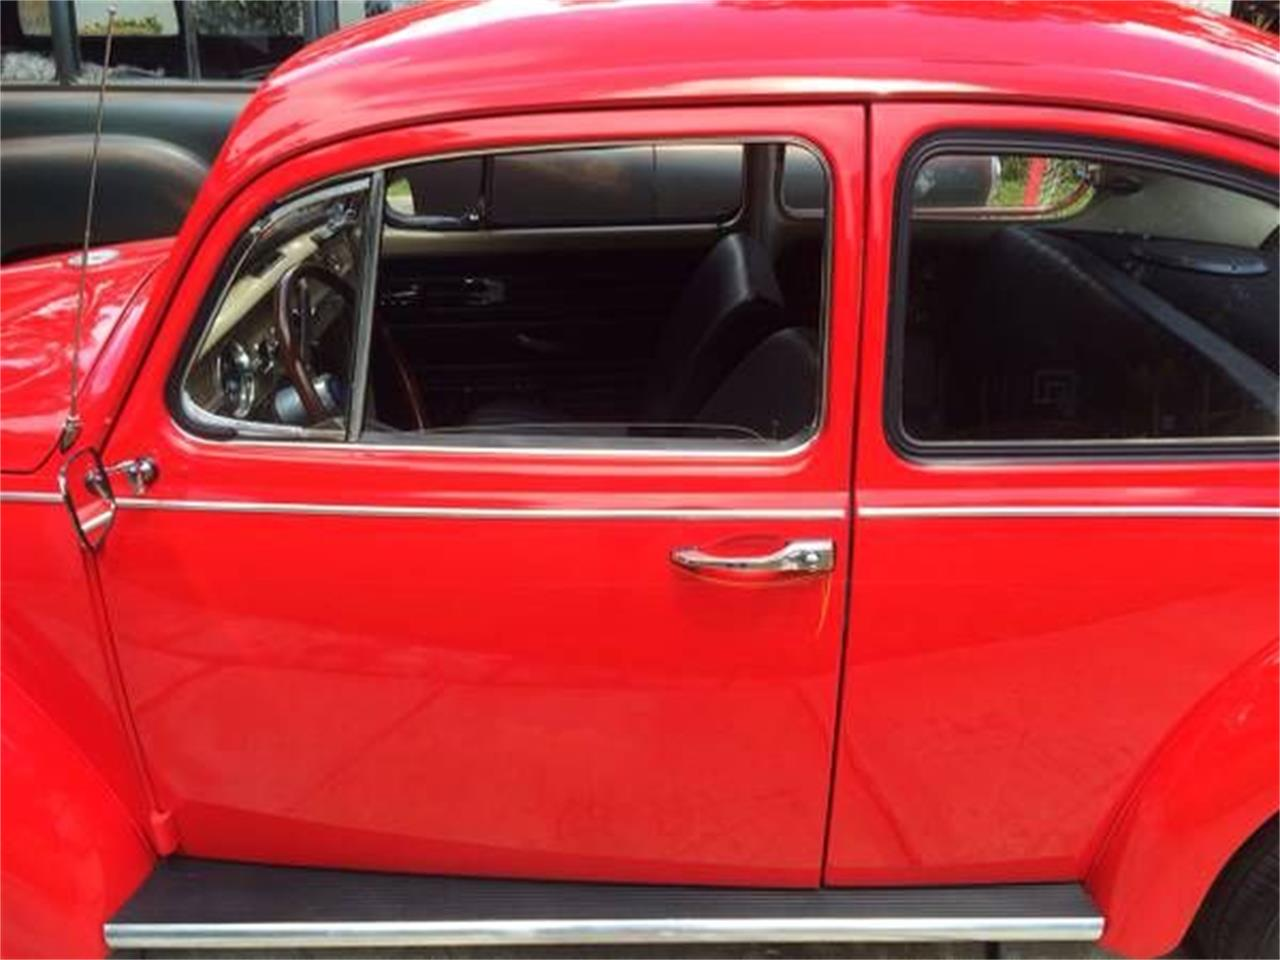 1967 Volkswagen Beetle for sale in Cadillac, MI – photo 8